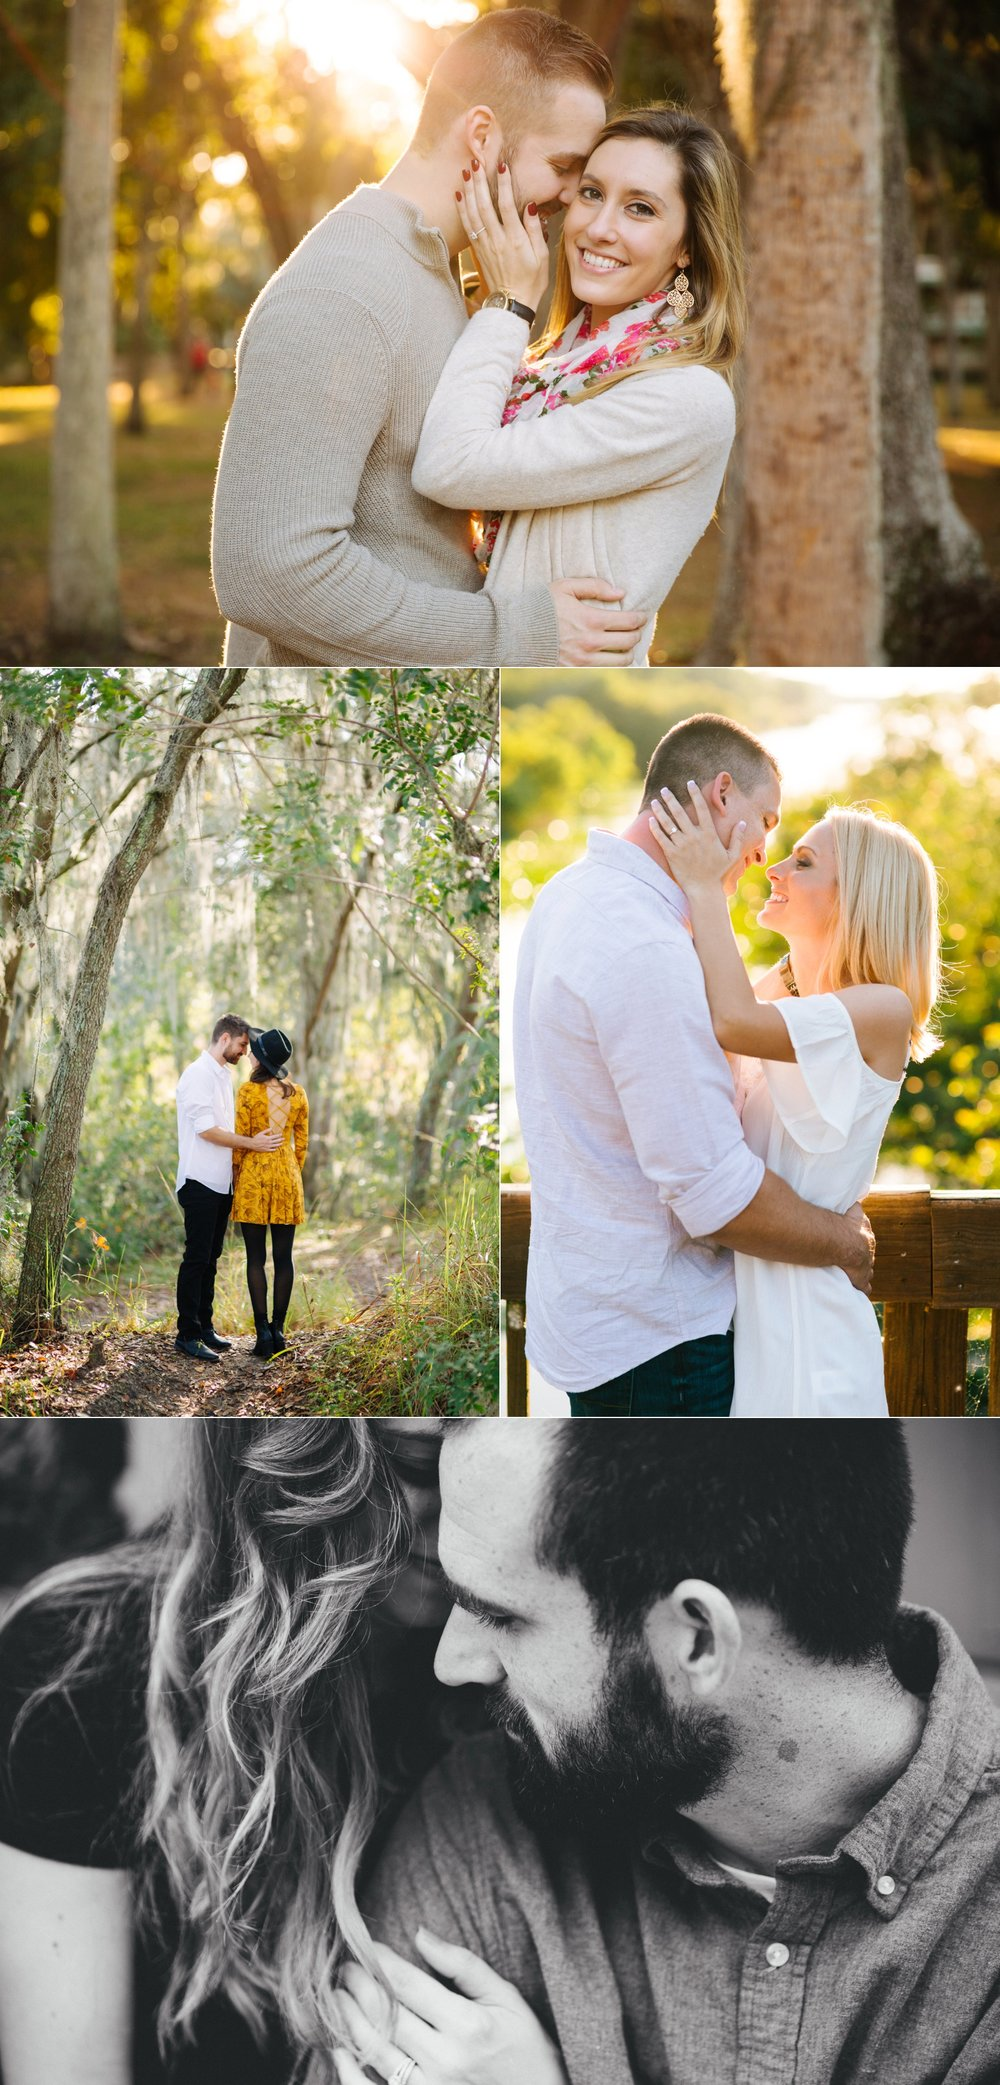 Jake & Katie Photography Best of Couples 2016-038.jpg